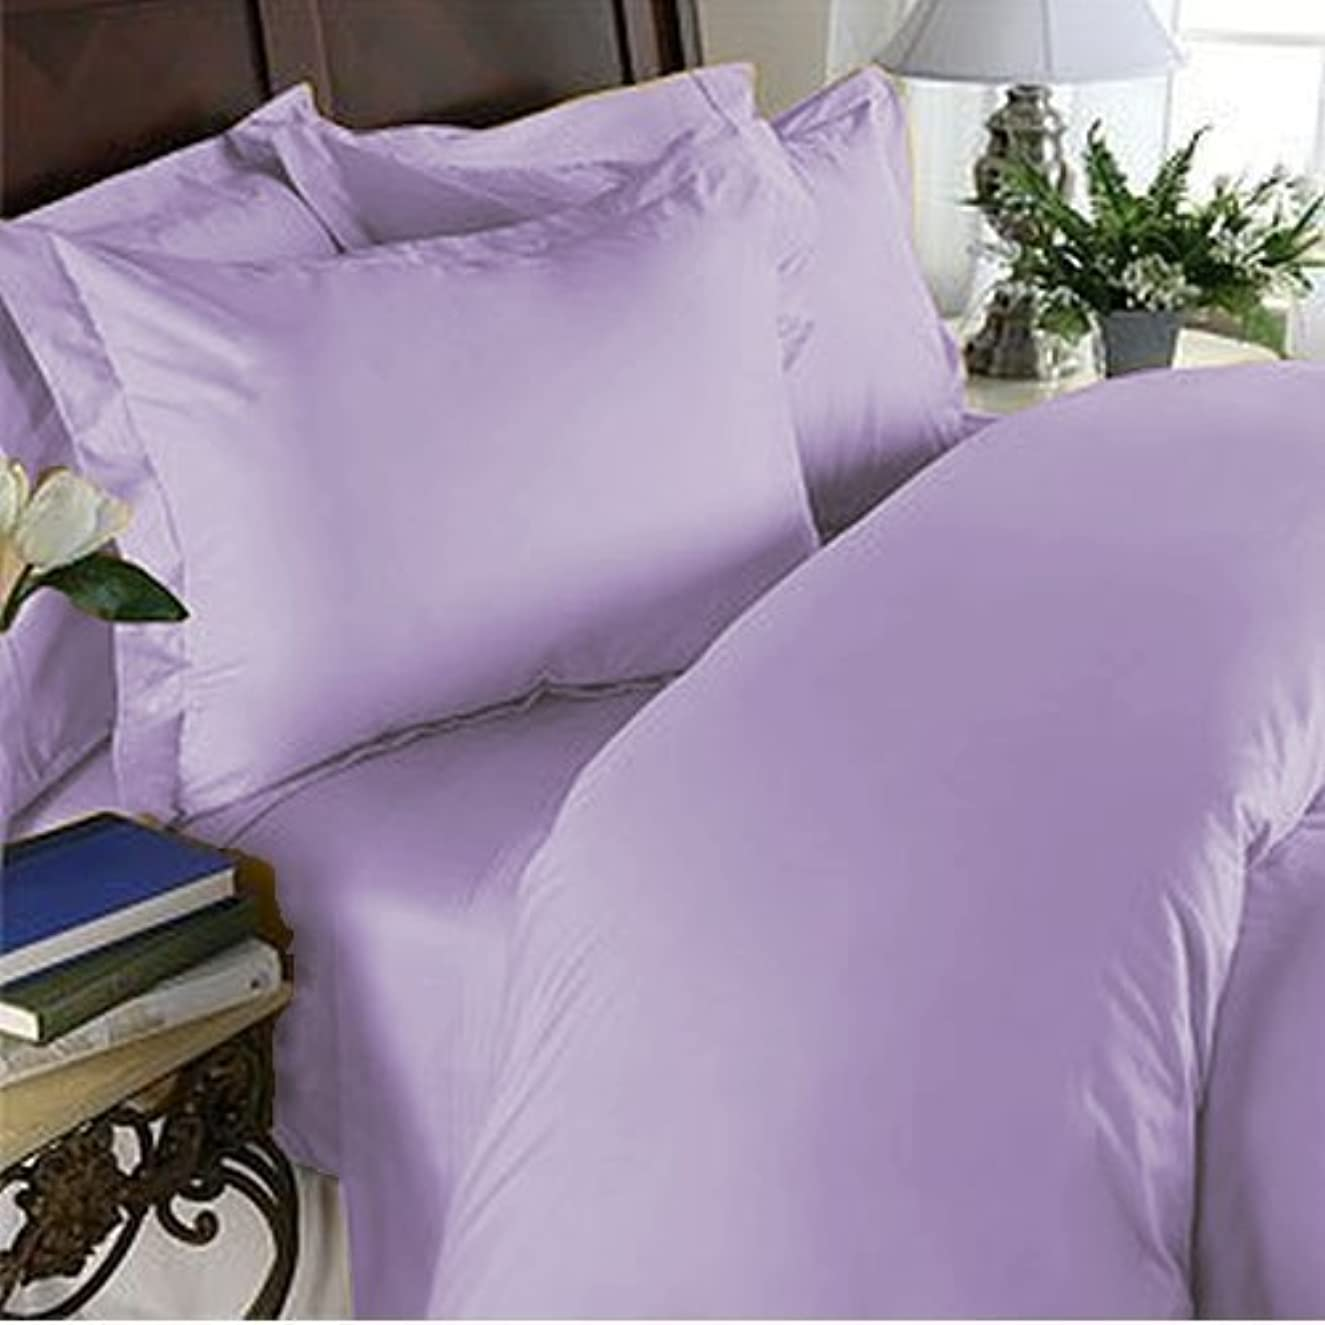 Elegant Comfort 1500 Thread Count Luxury Silky Soft Wrinkle & Fade Resistant 2 PCS Pillow Cases, King/California King,Lilac